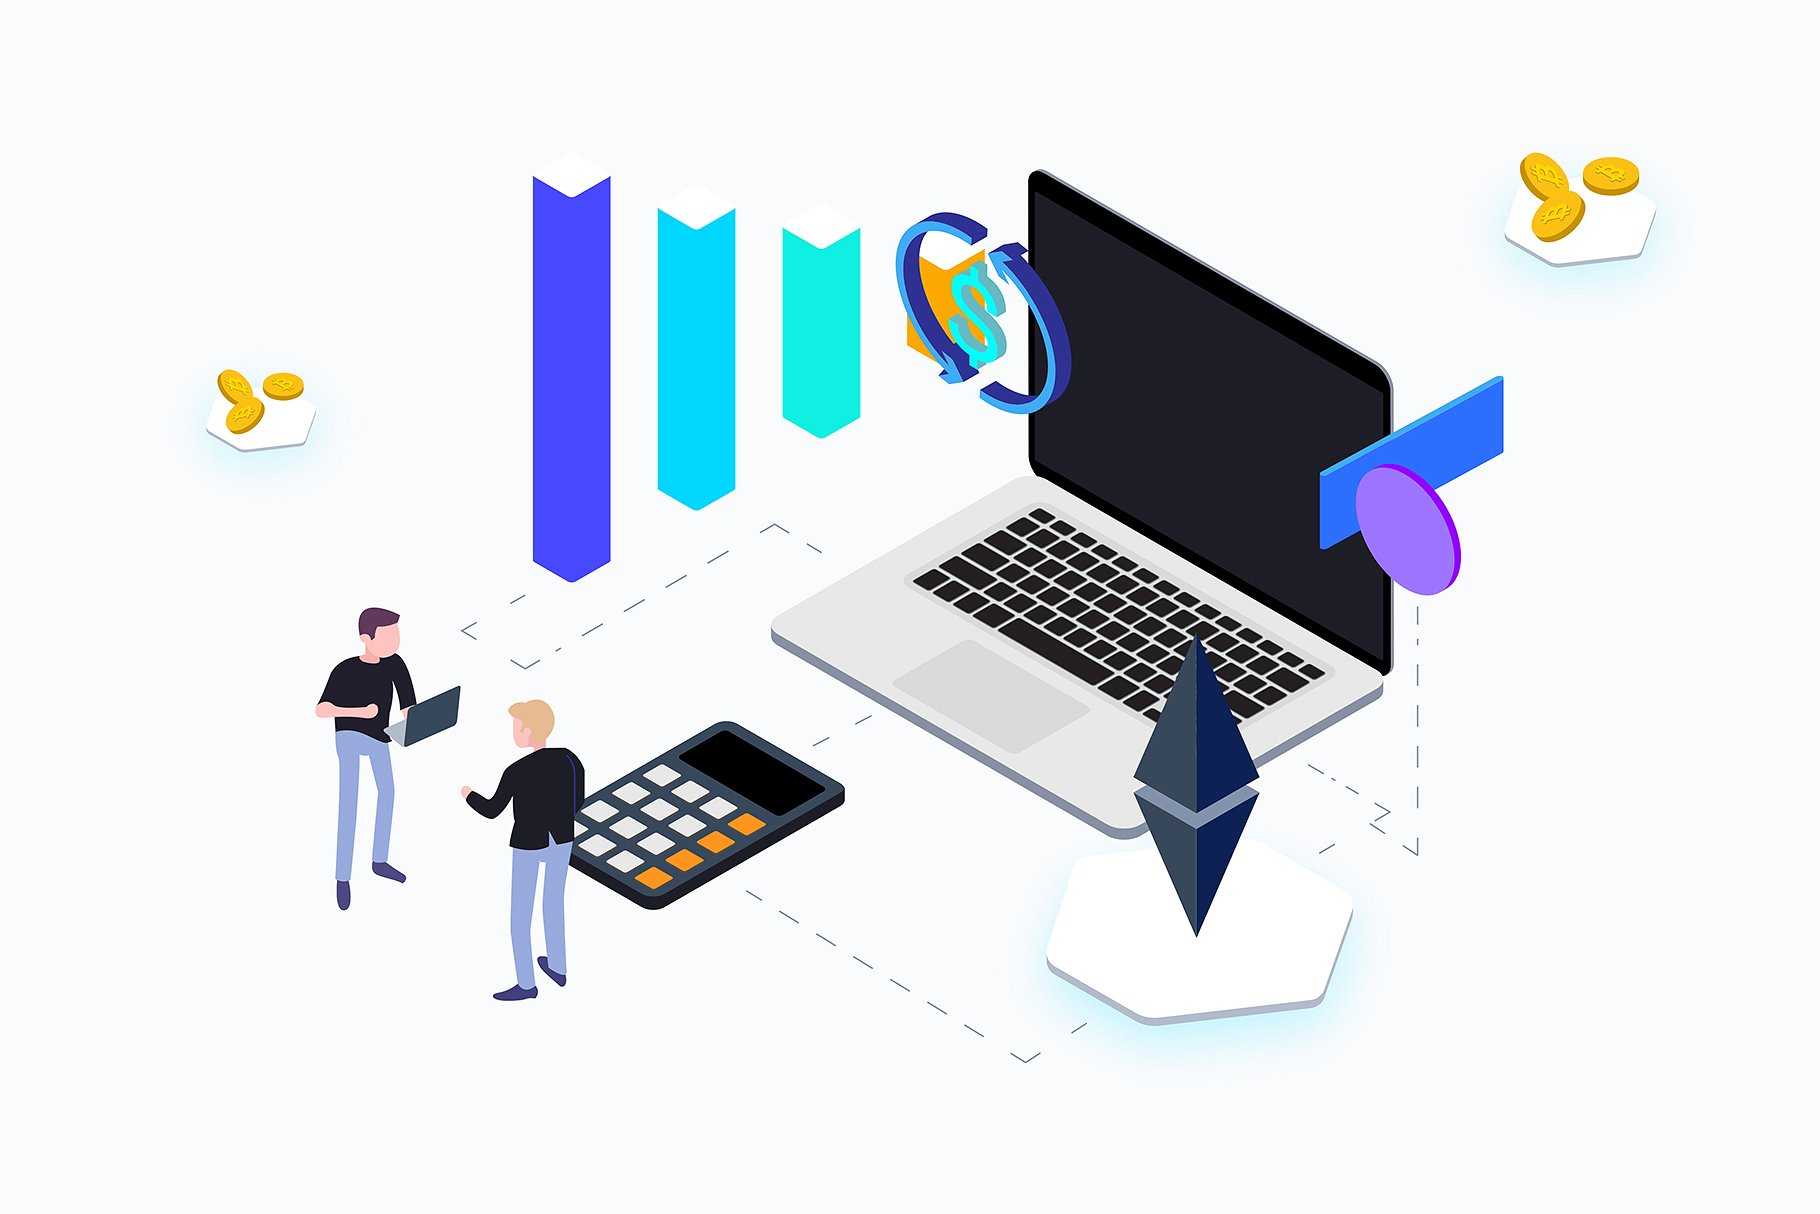 ilustration-consulting